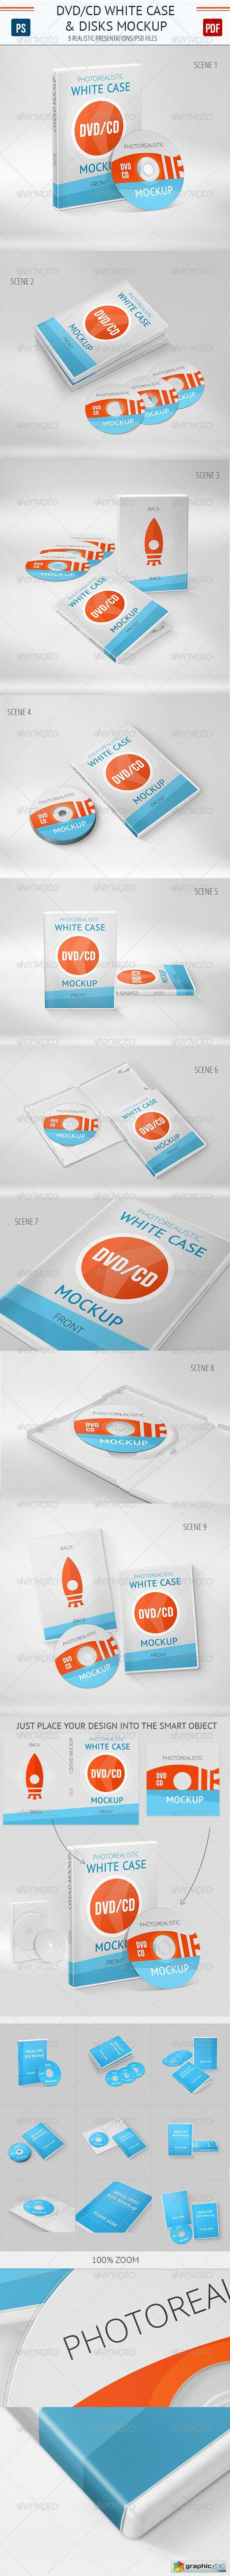 Realistic DVD/CD Mockup White Case & Disks